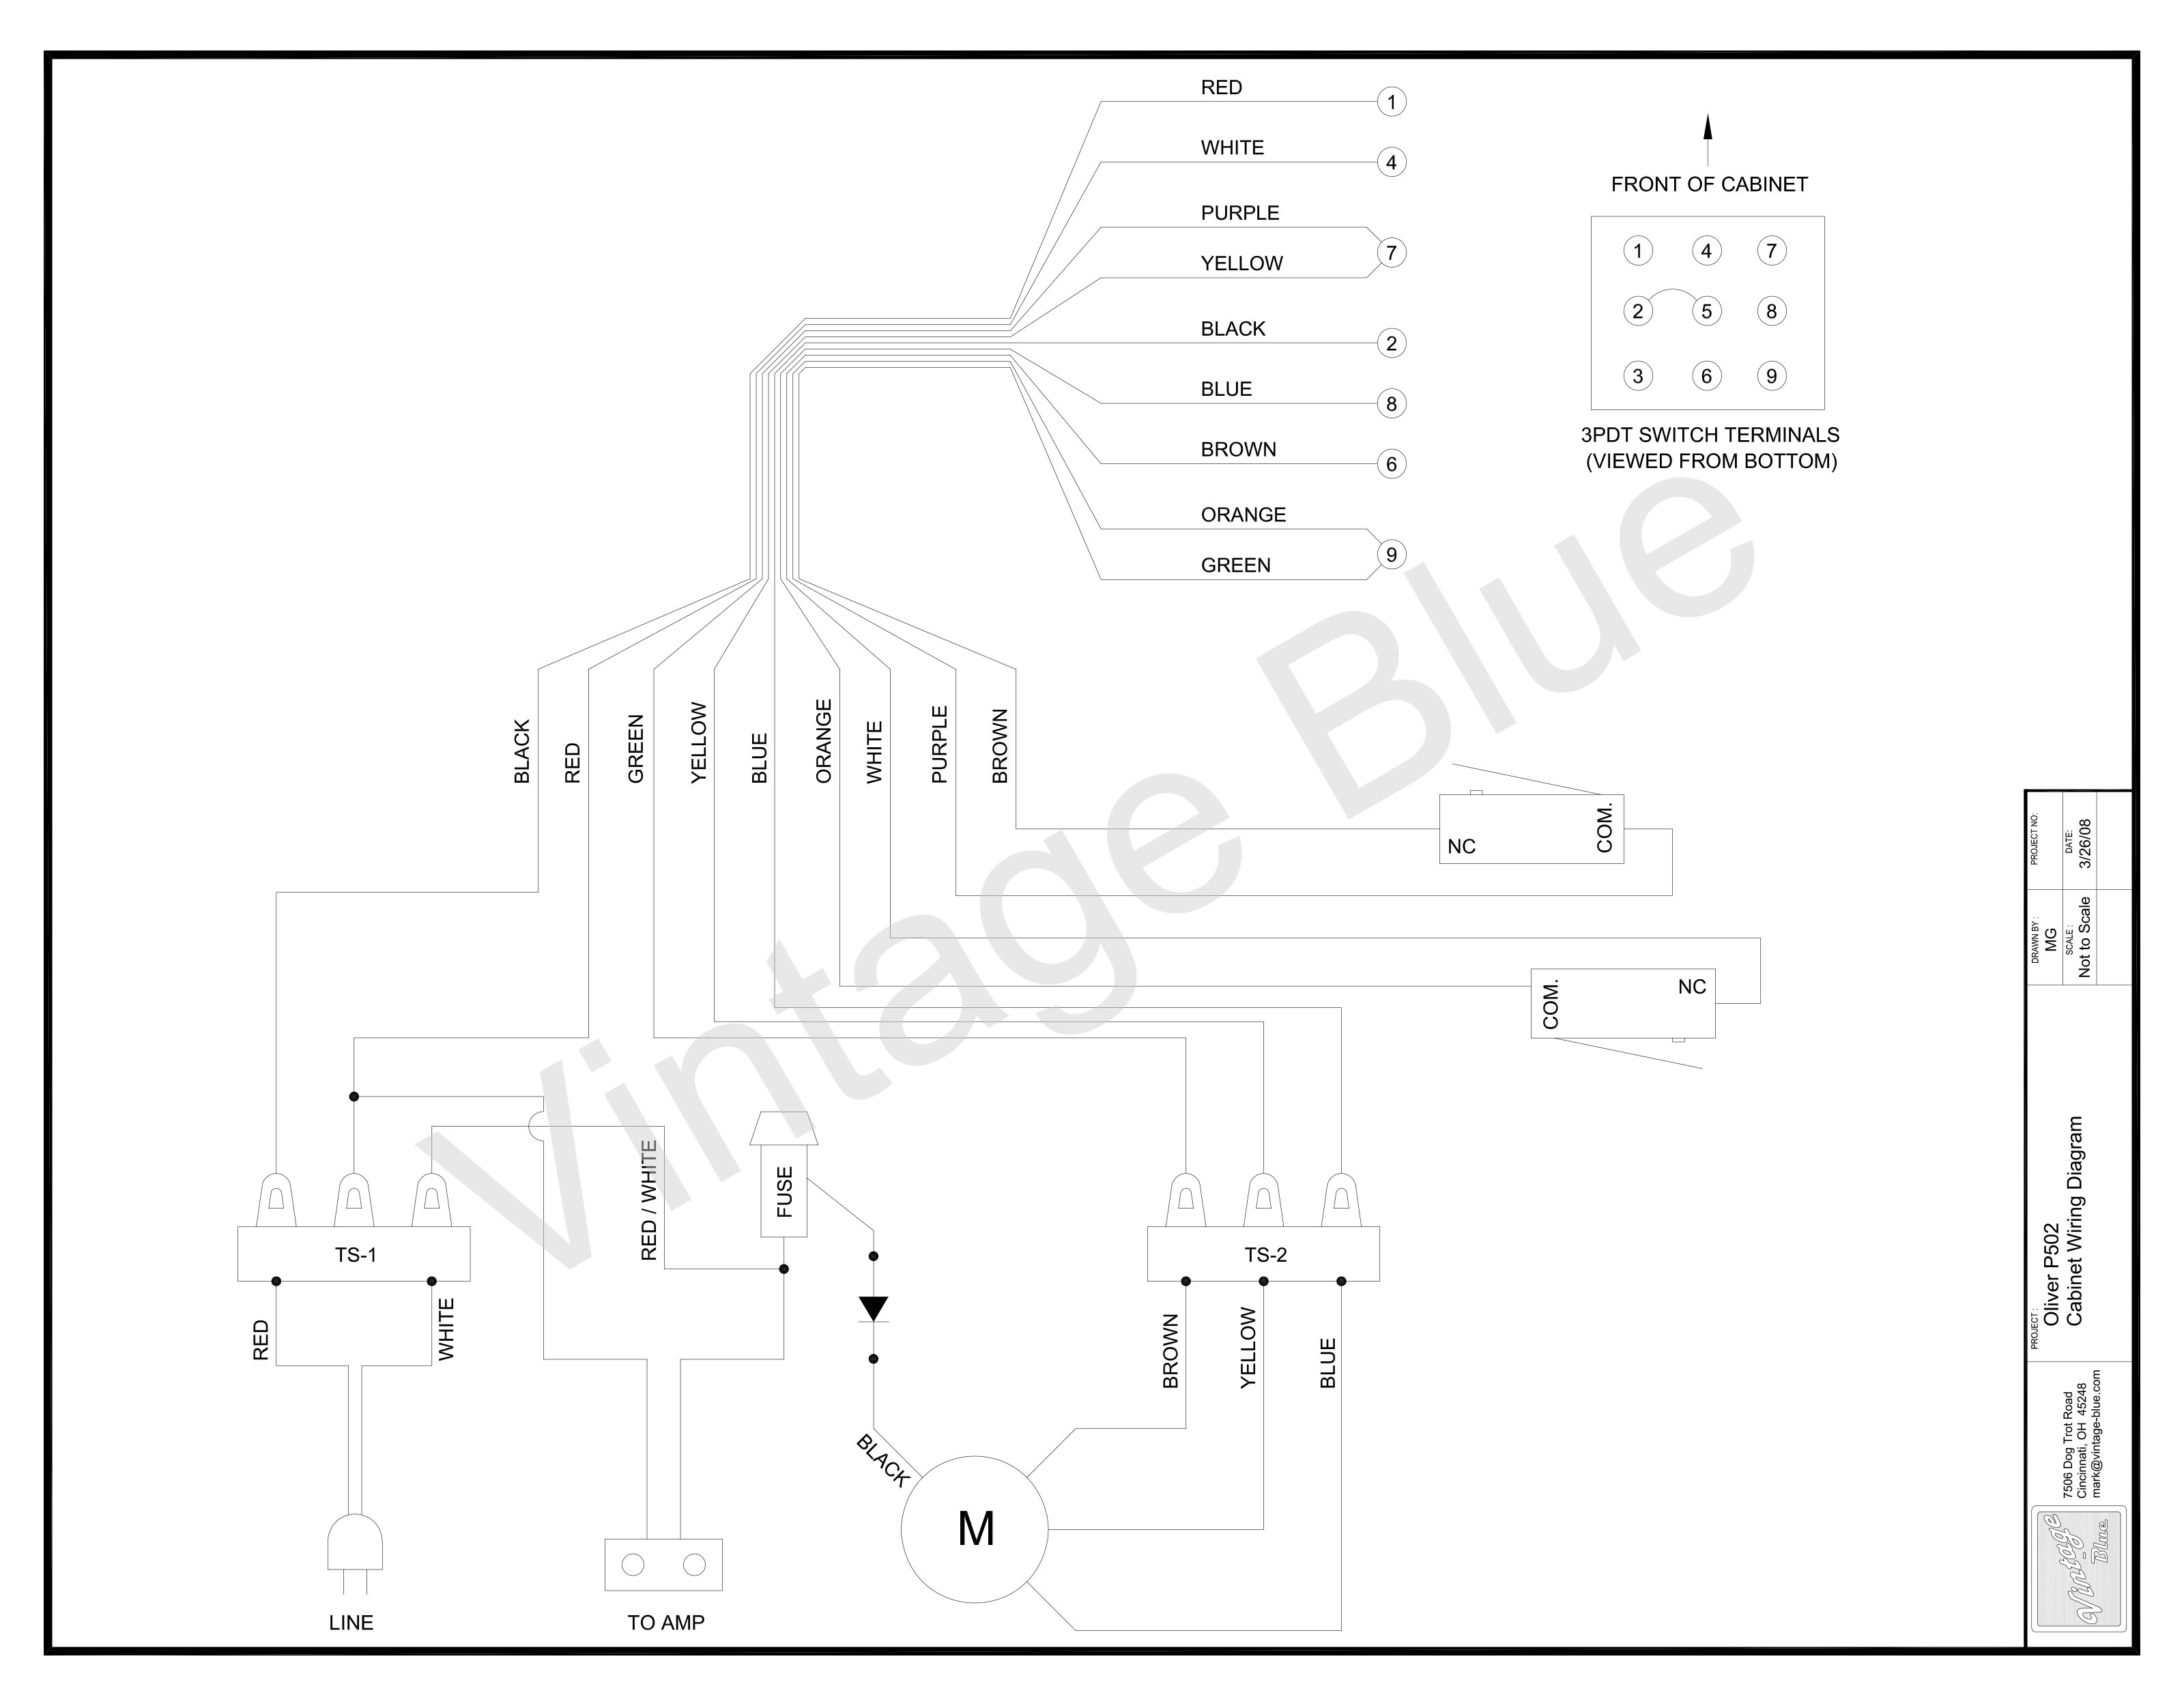 Peavey 5150 Wiring Diagram - Auto Electrical Wiring Diagram on